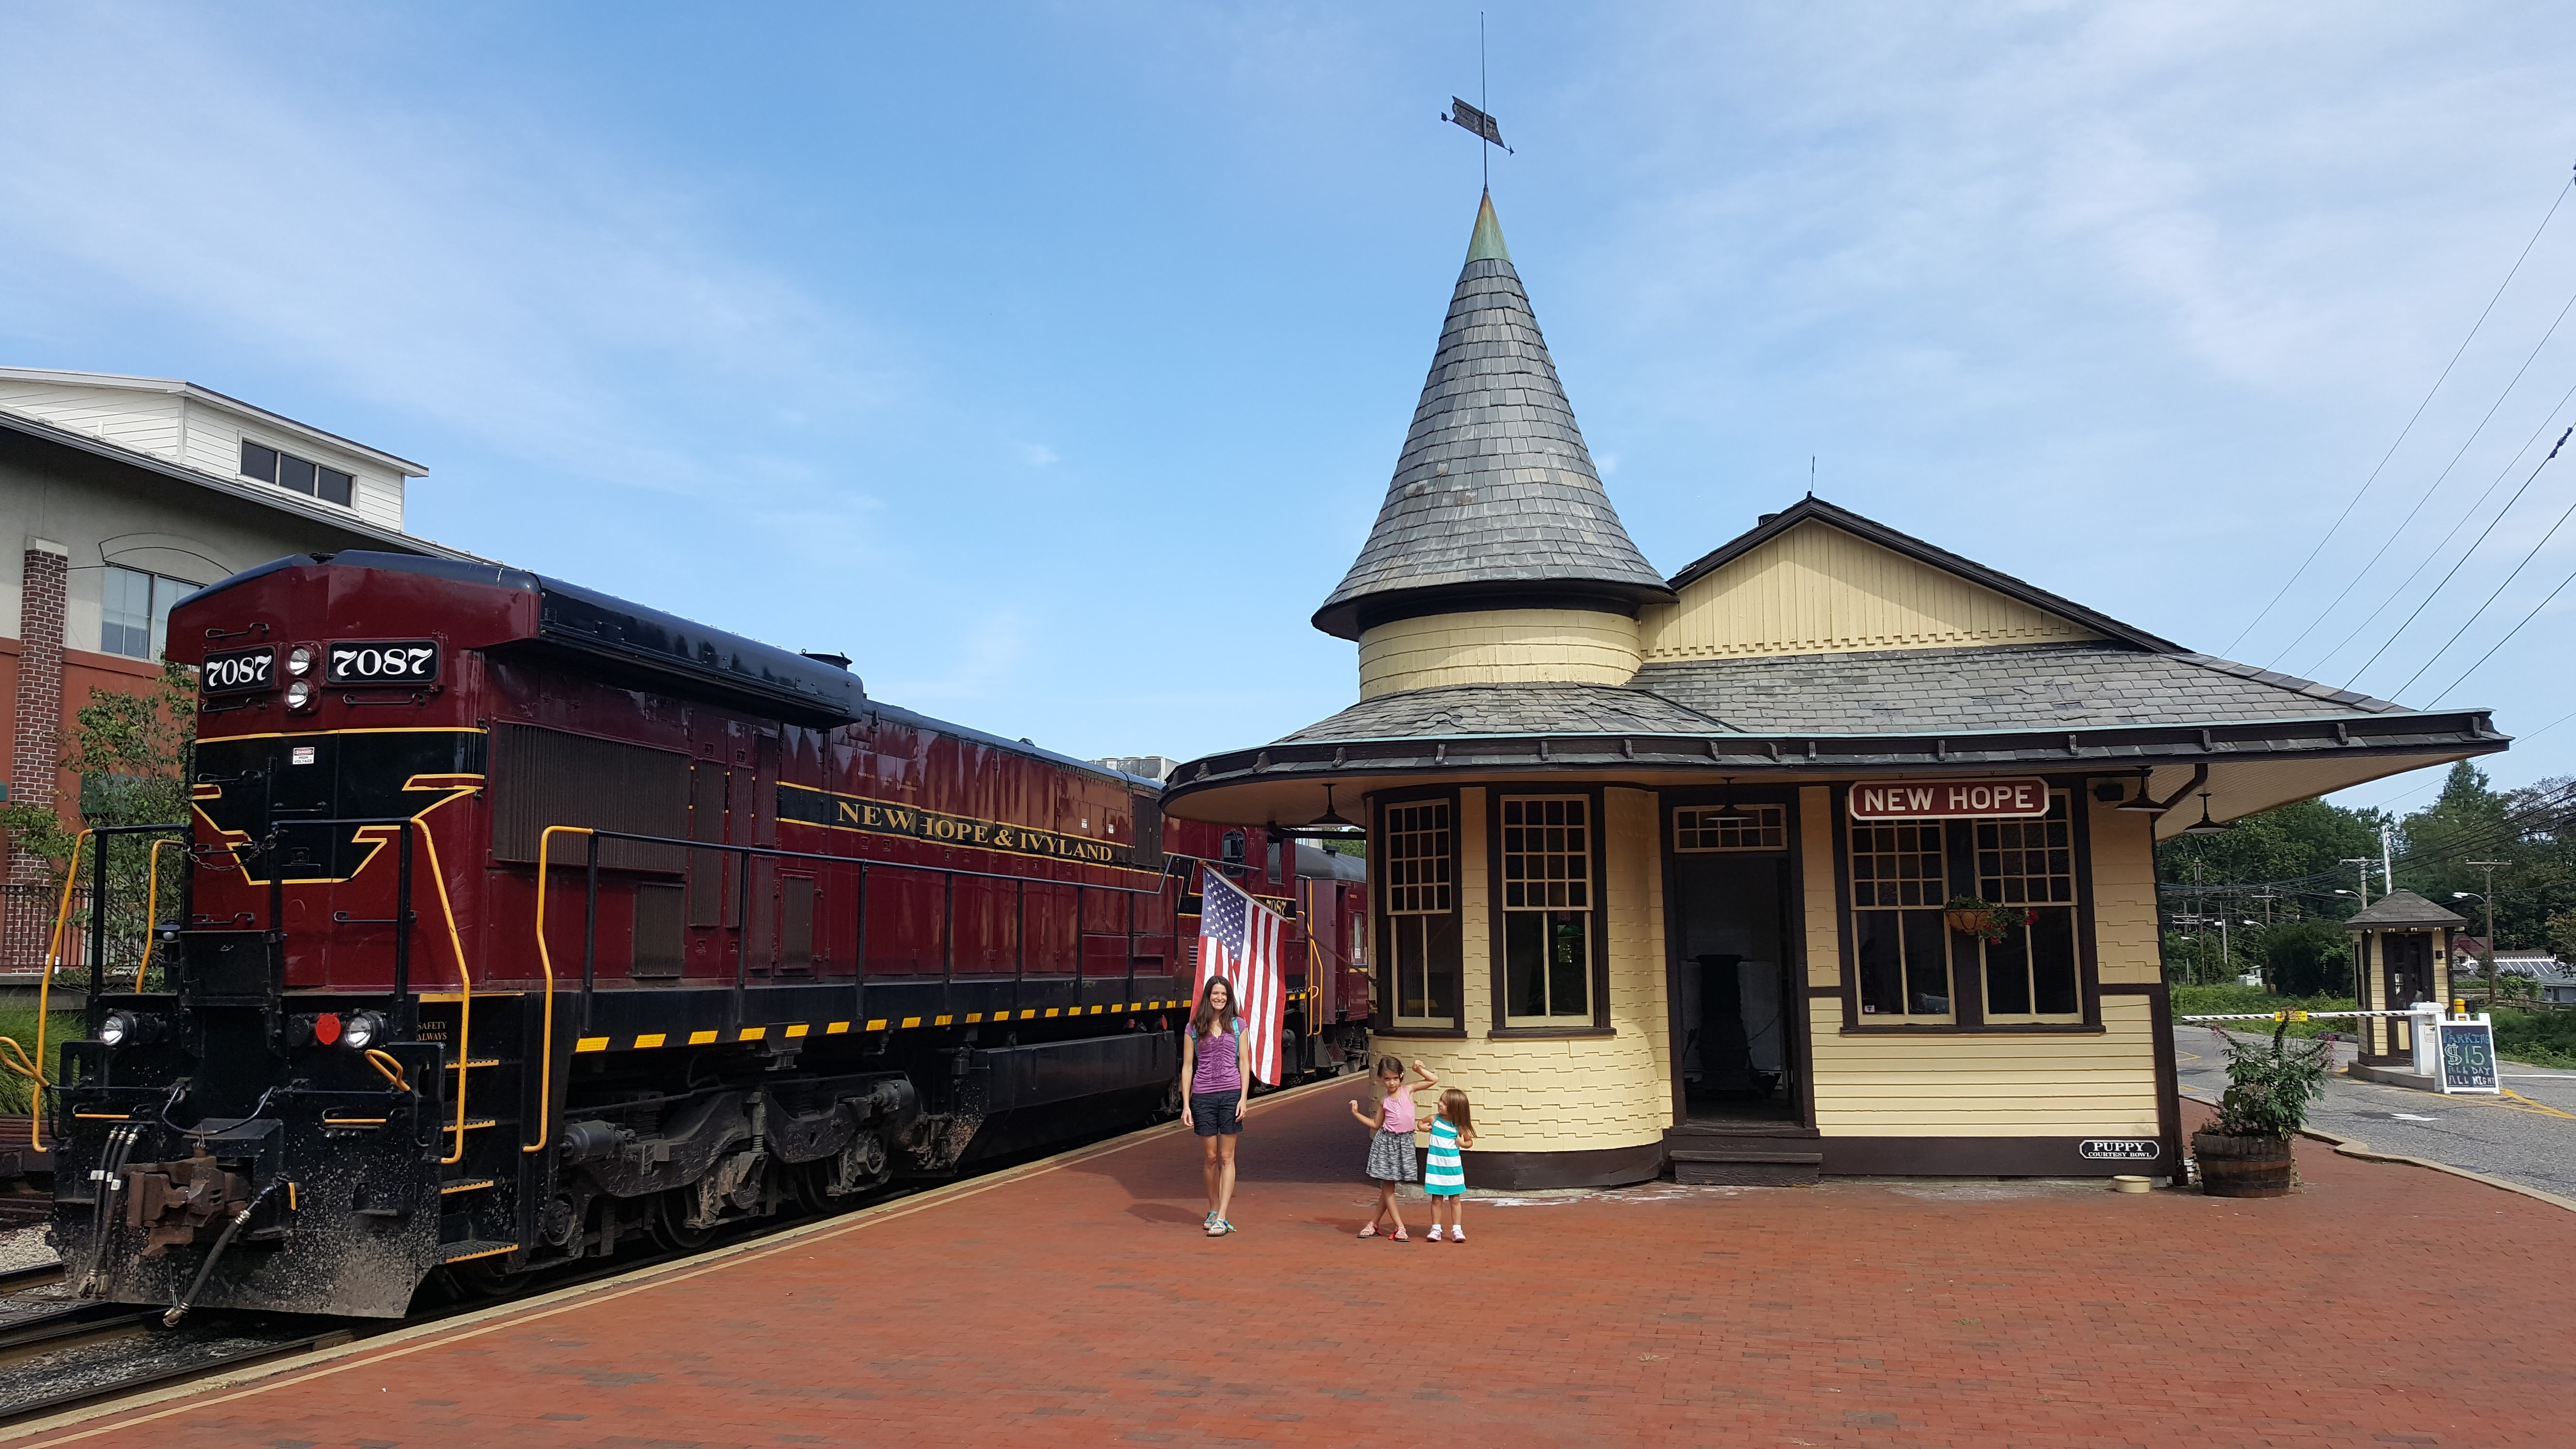 Peaceful Weekend Getaway In Bucks County, Pennsylvania - The New Hope & Ivyland Railroad - Found on www.theresasreviews.com